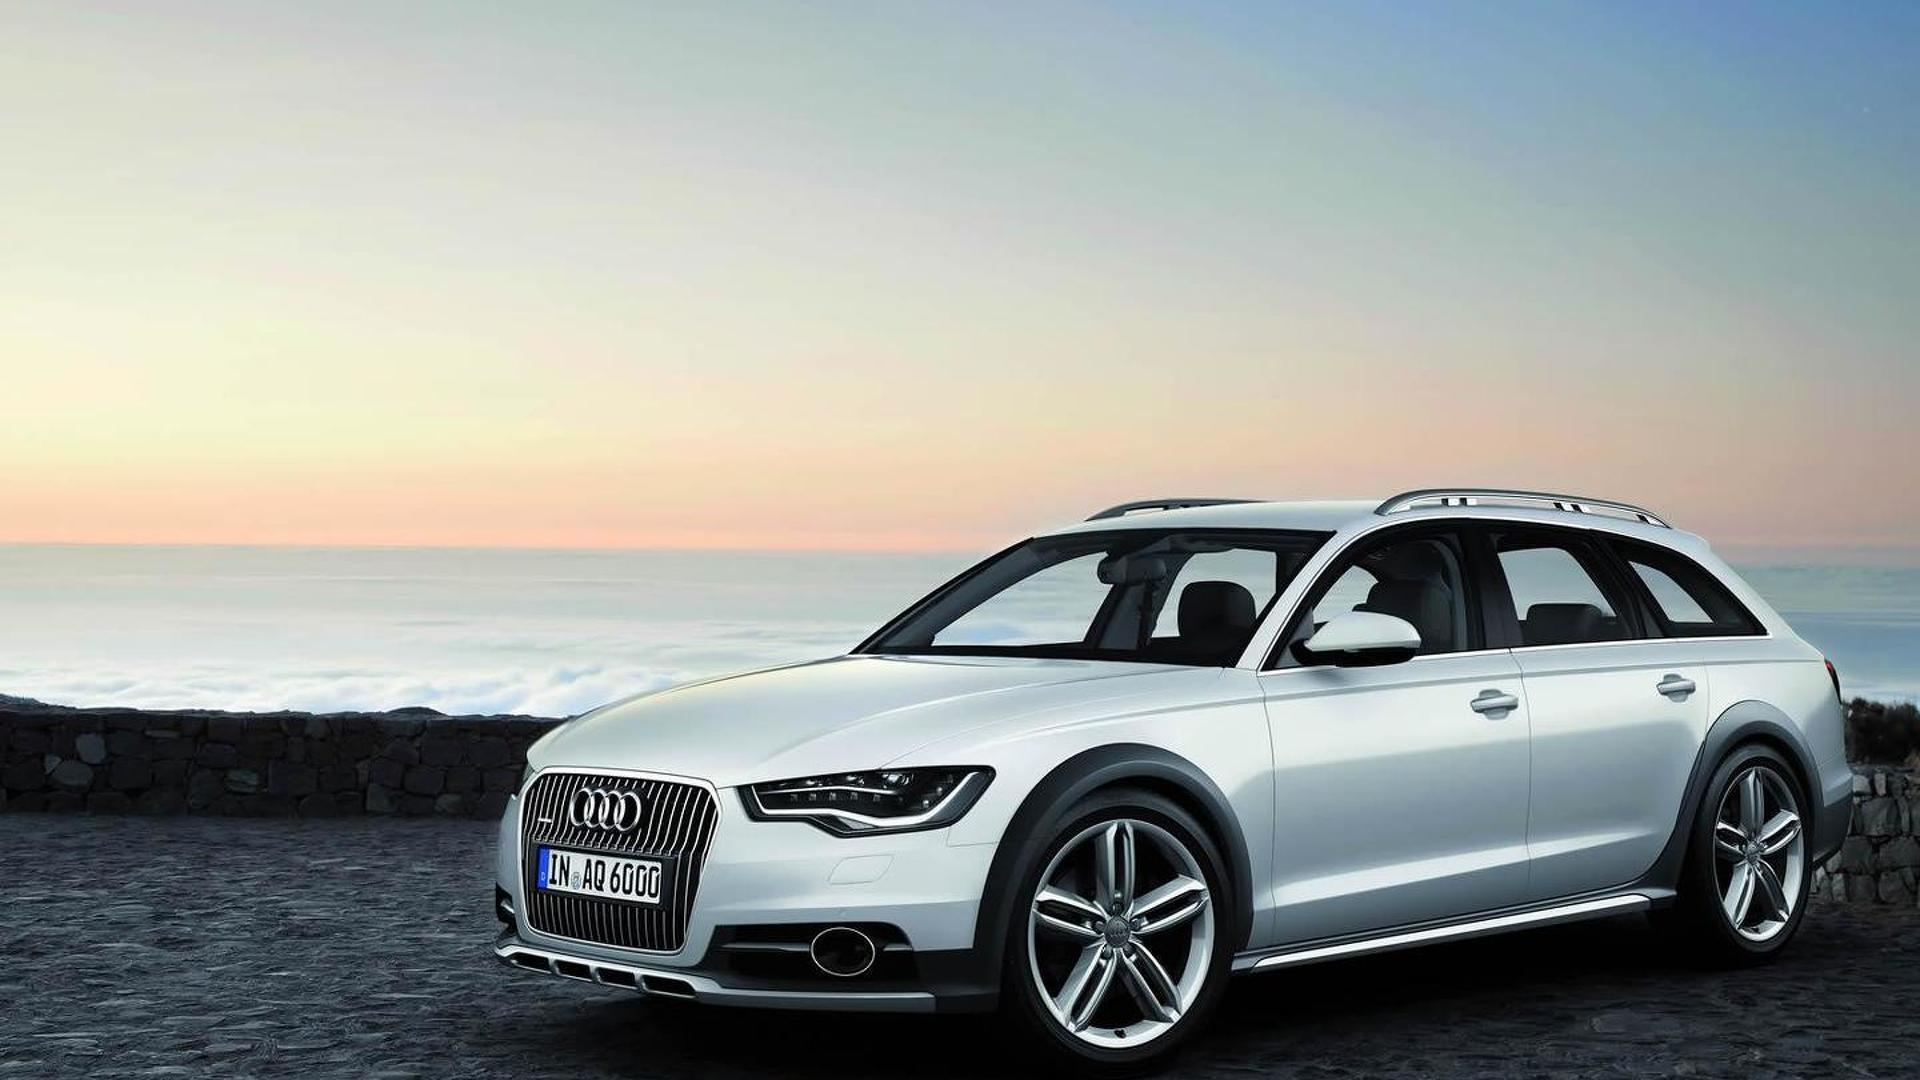 2013 Audi A6 allroad revealed